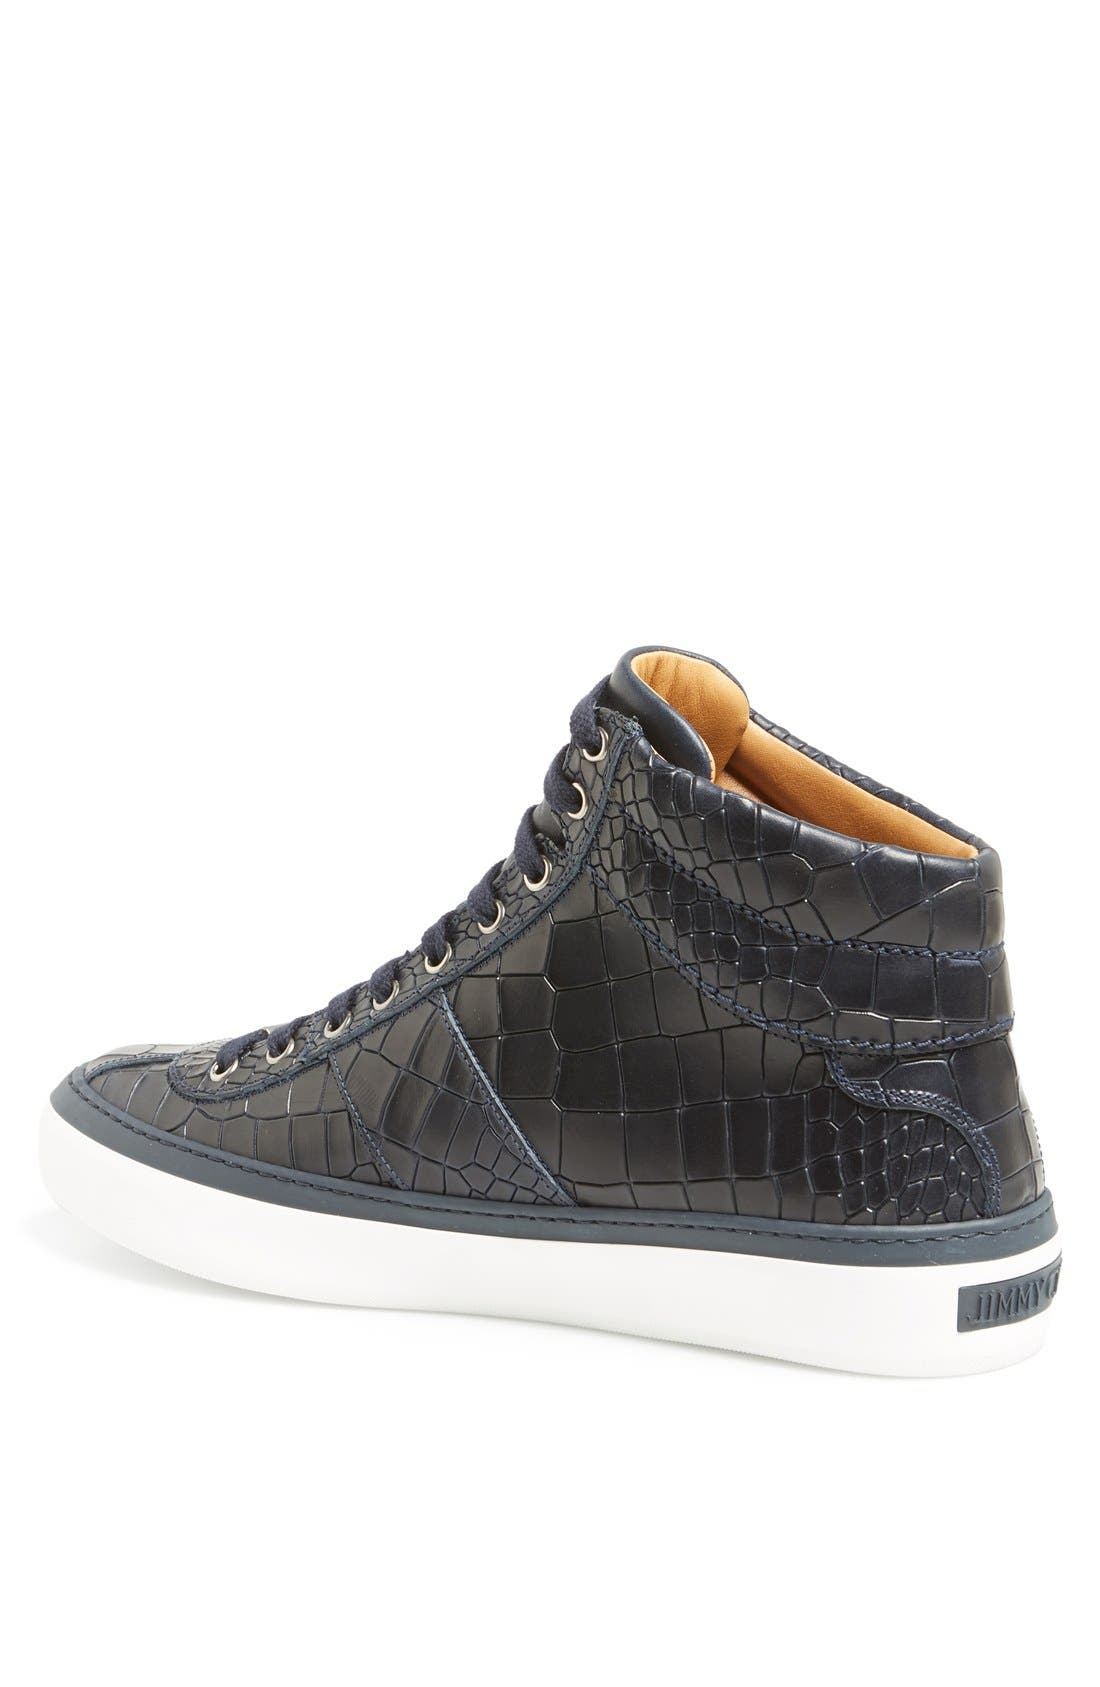 Belgravia High Top Sneaker,                             Alternate thumbnail 6, color,